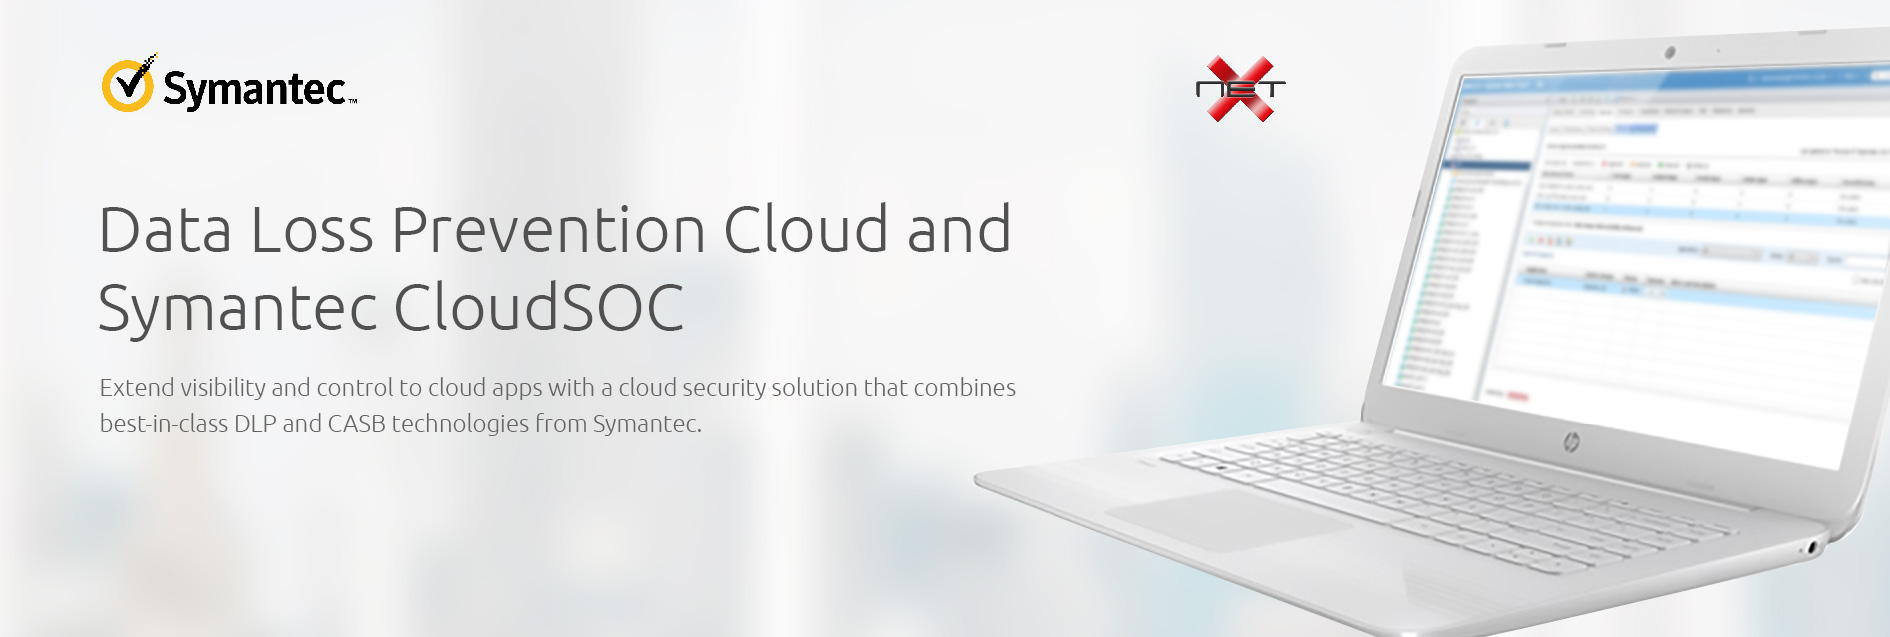 netx-symantec-data-loss-prevention-cloud-banner